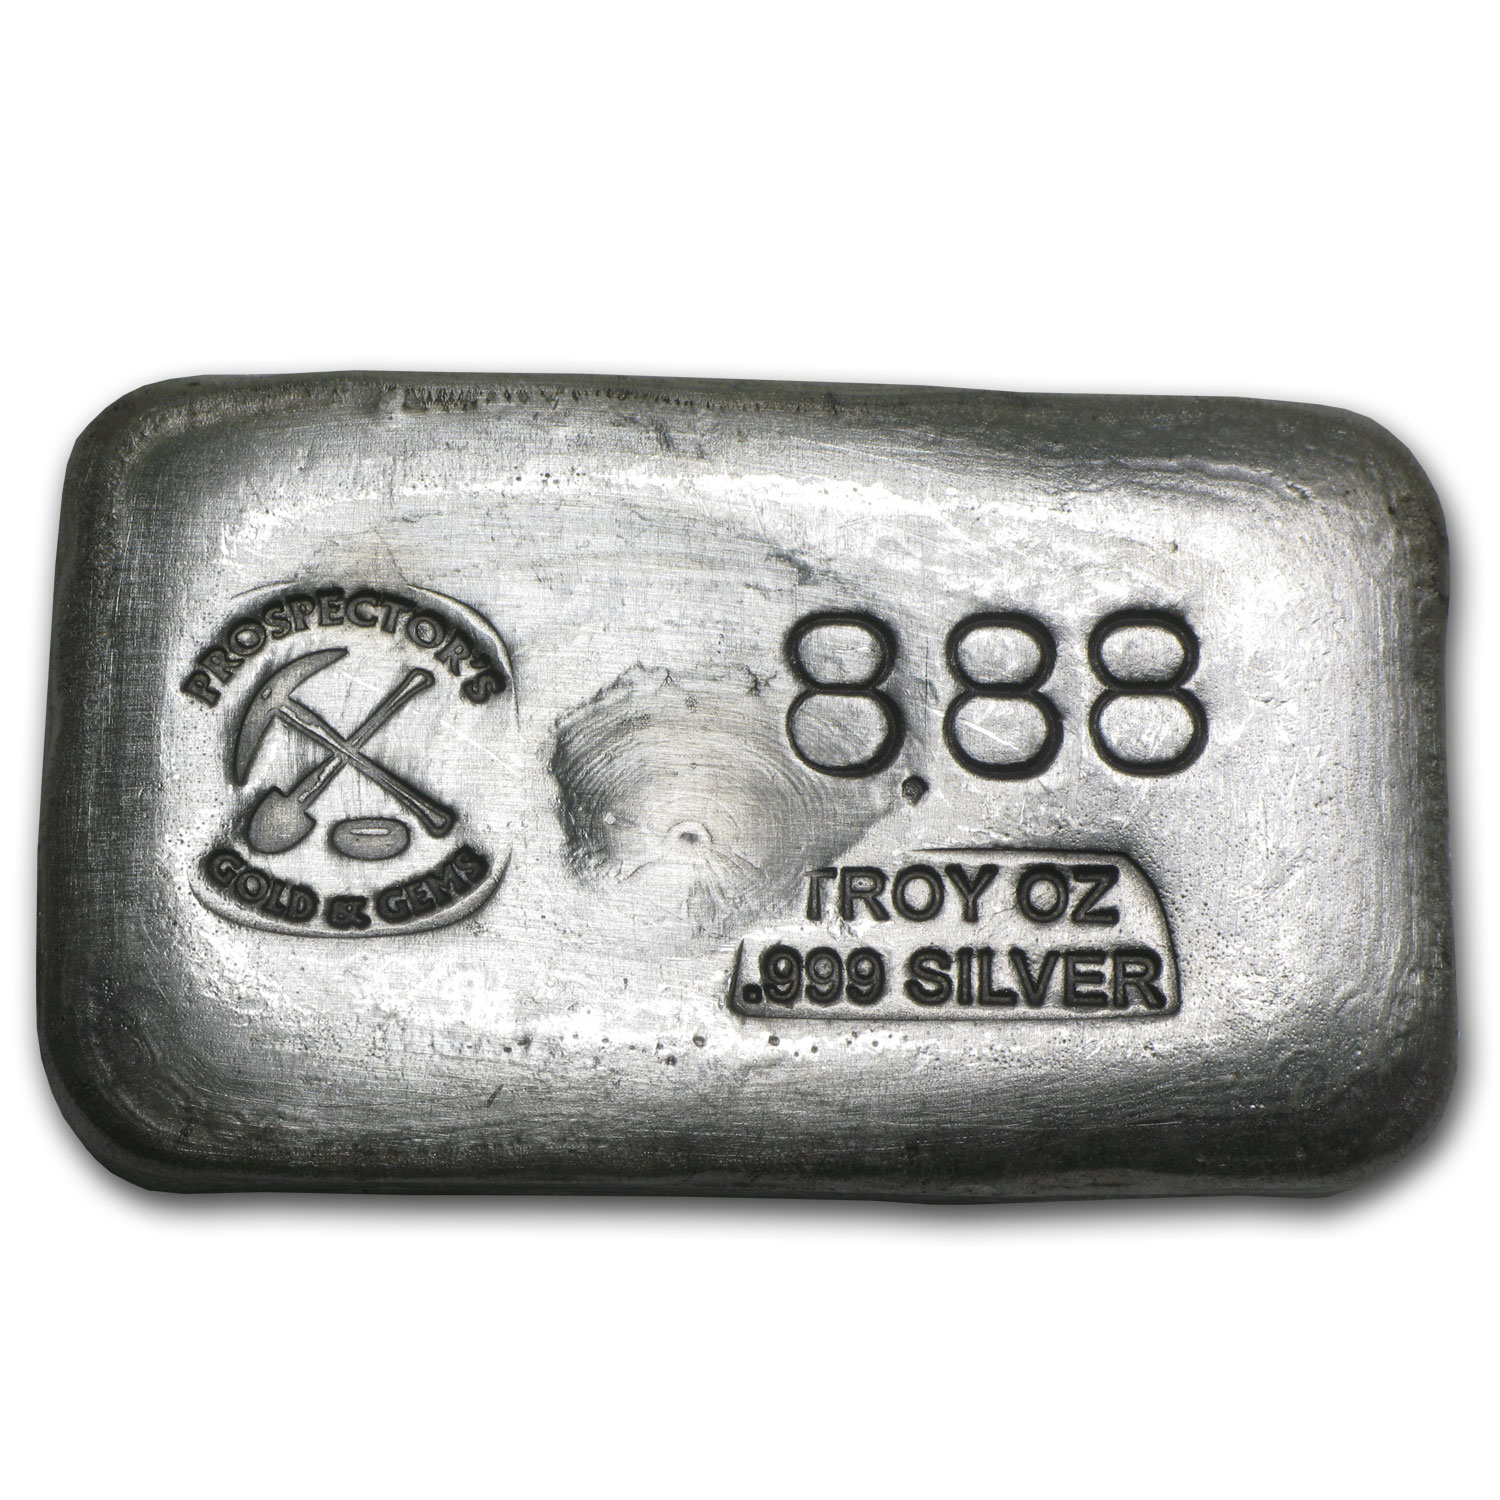 8.88 oz Silver Bars - Prospector's Gold & Gems